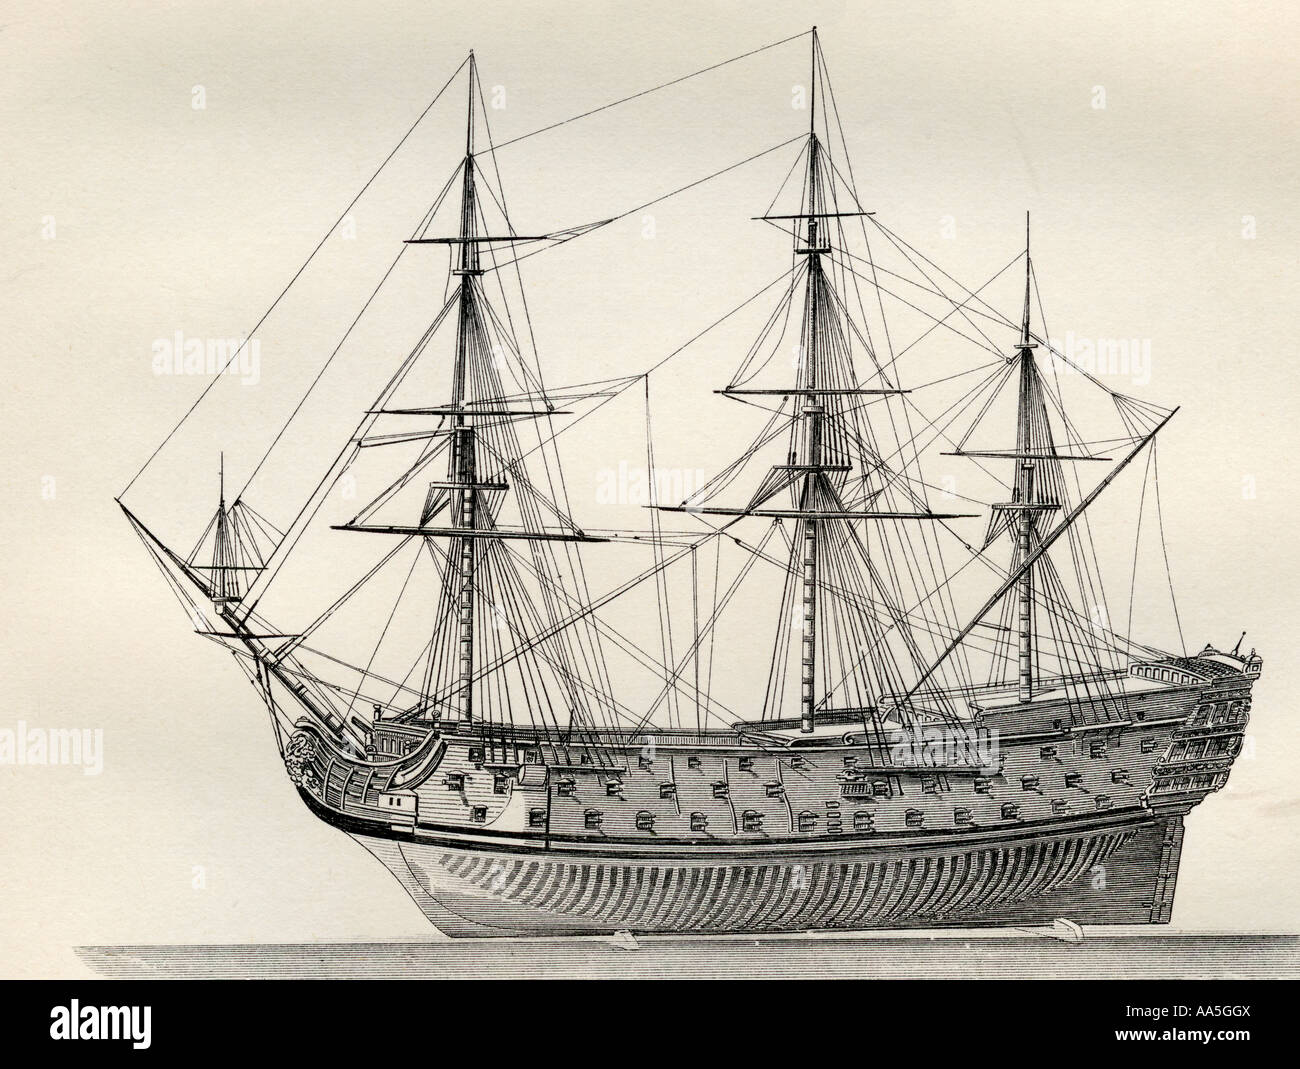 The Royal William English warship constructed 1670 - Stock Image